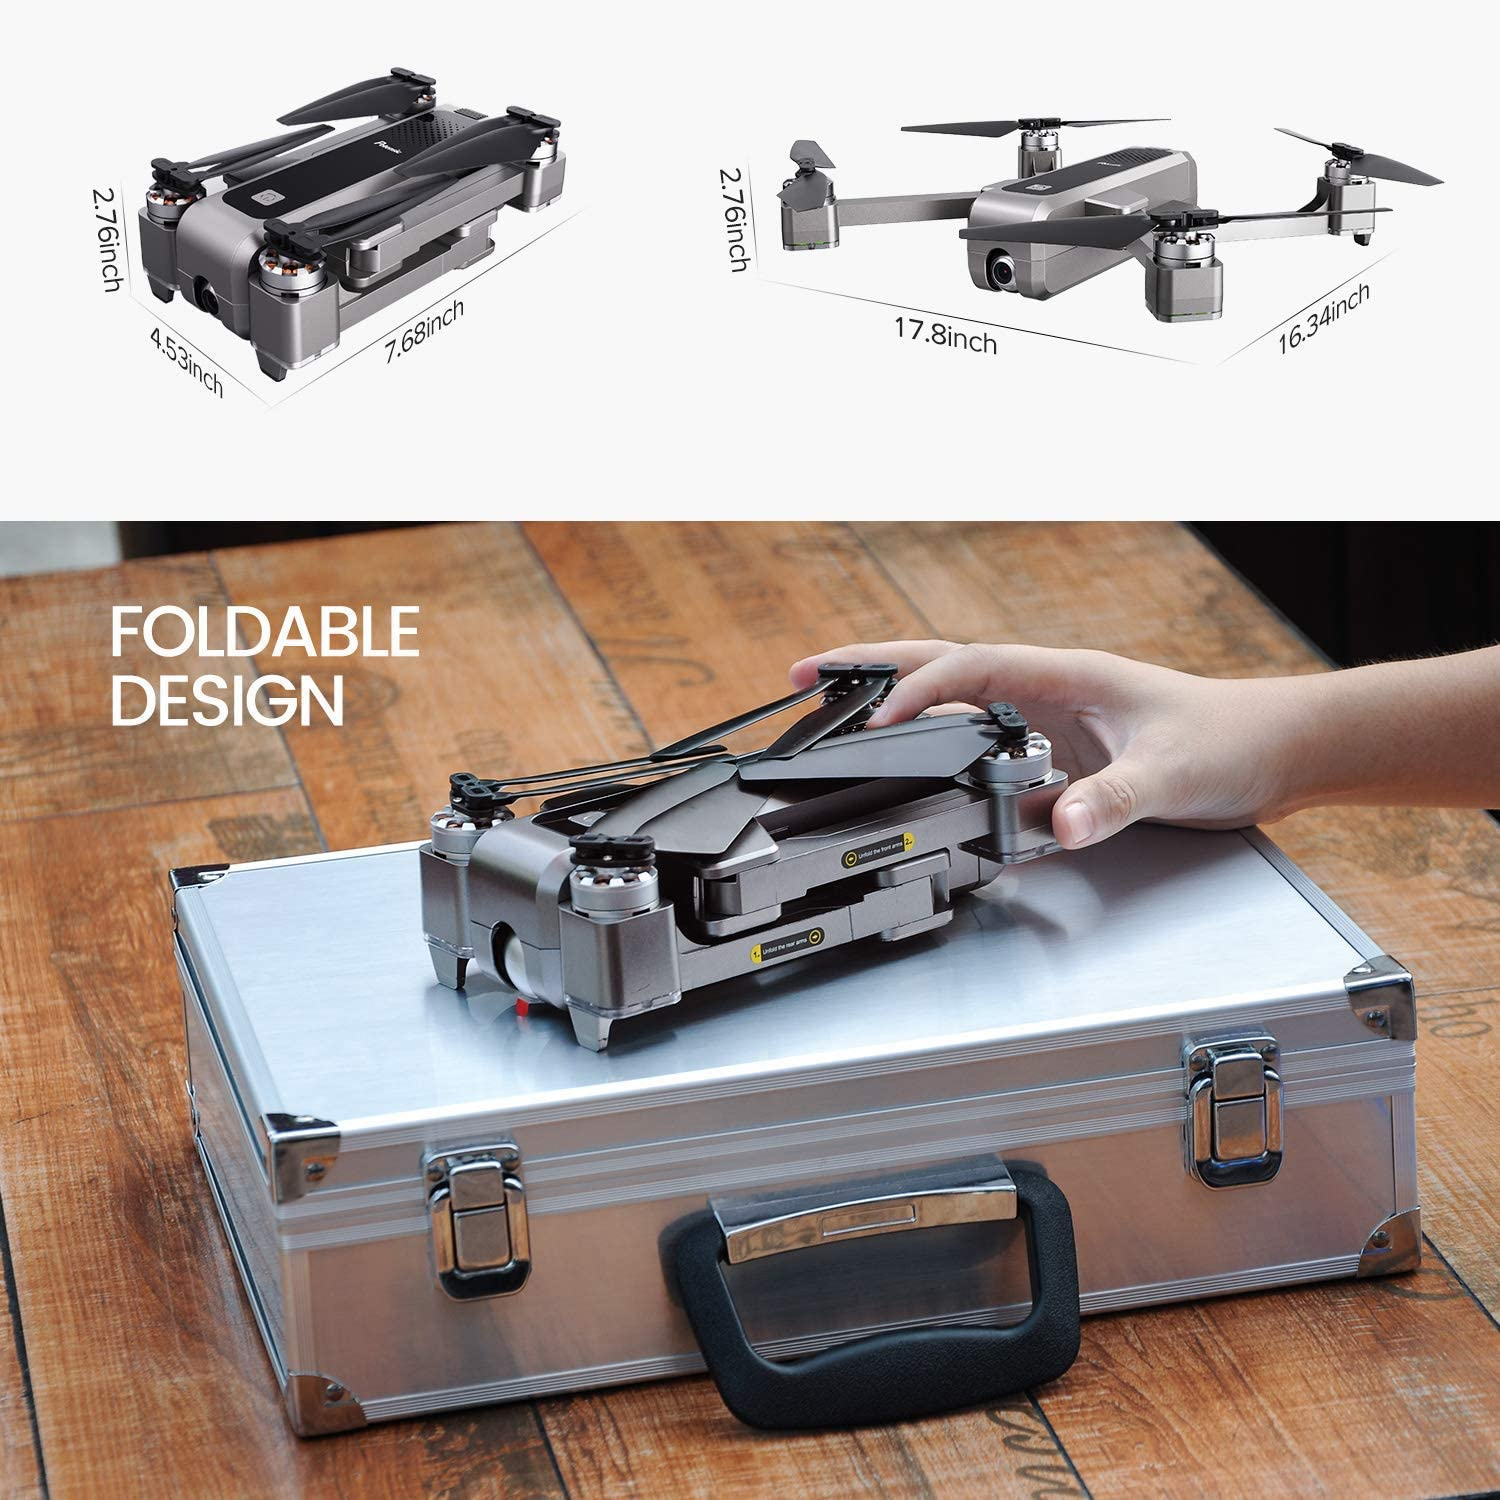 Potensic D88 Foldable Drone is the Best foldable Drone Under 300 dollars